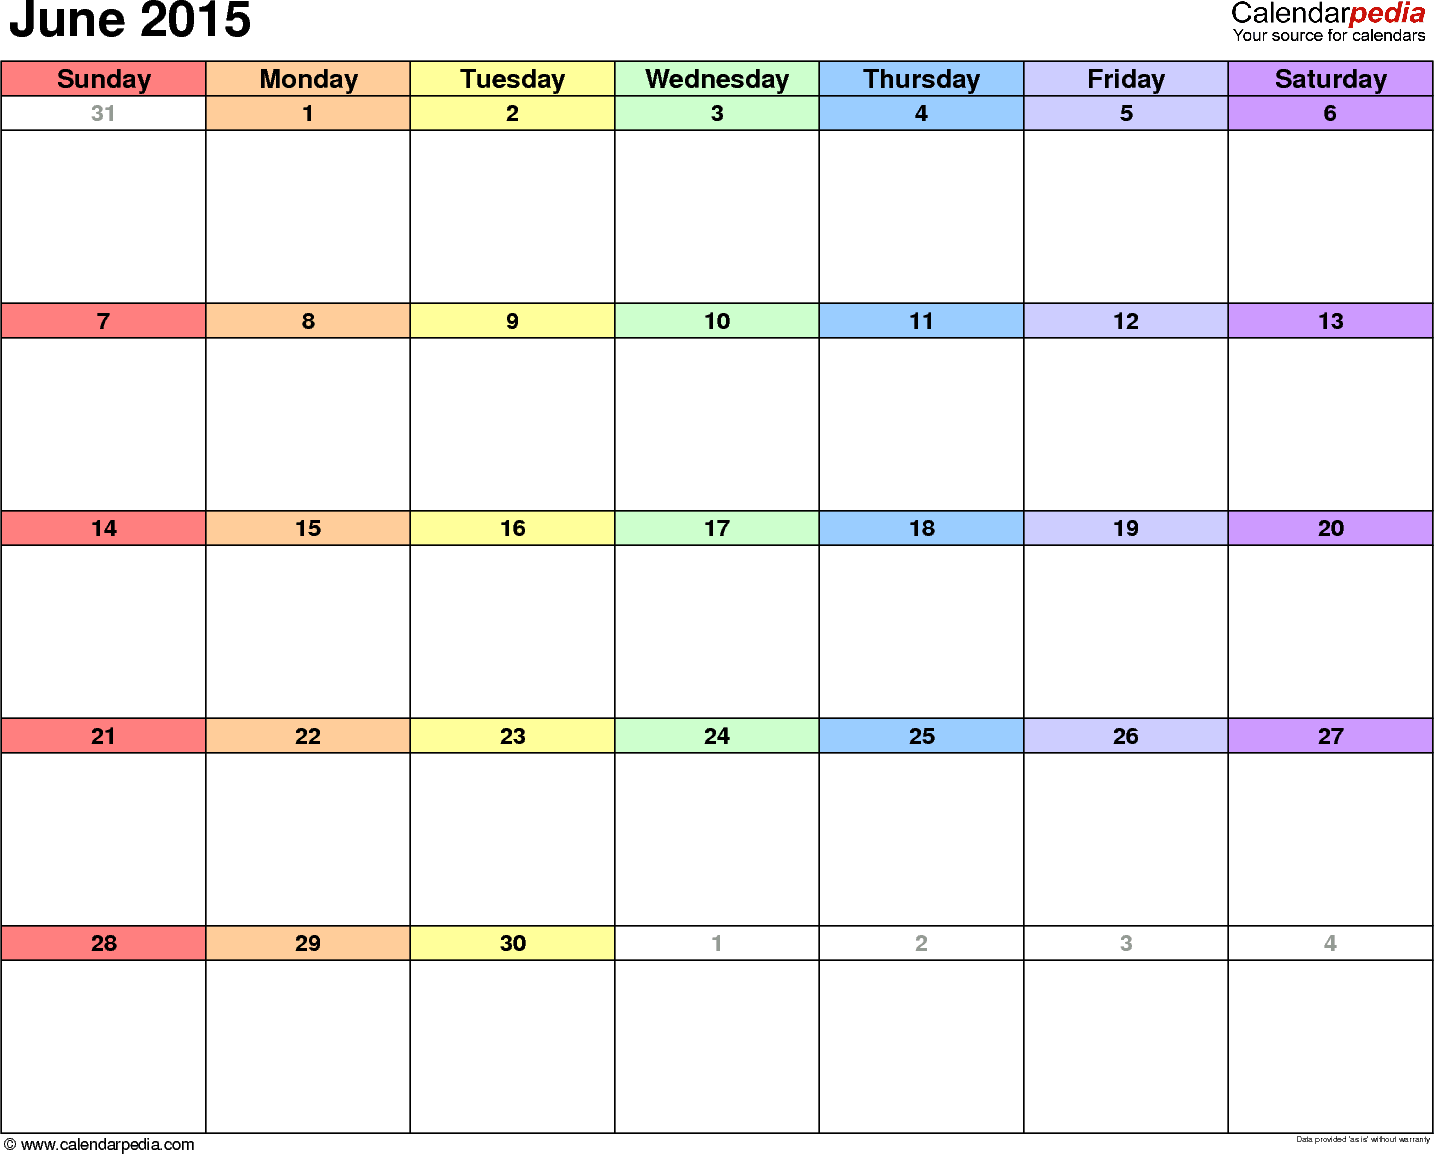 June 2015 calendar, landscape orientation, 'rainbow calendar', available as printable templates for Word, Excel and PDF